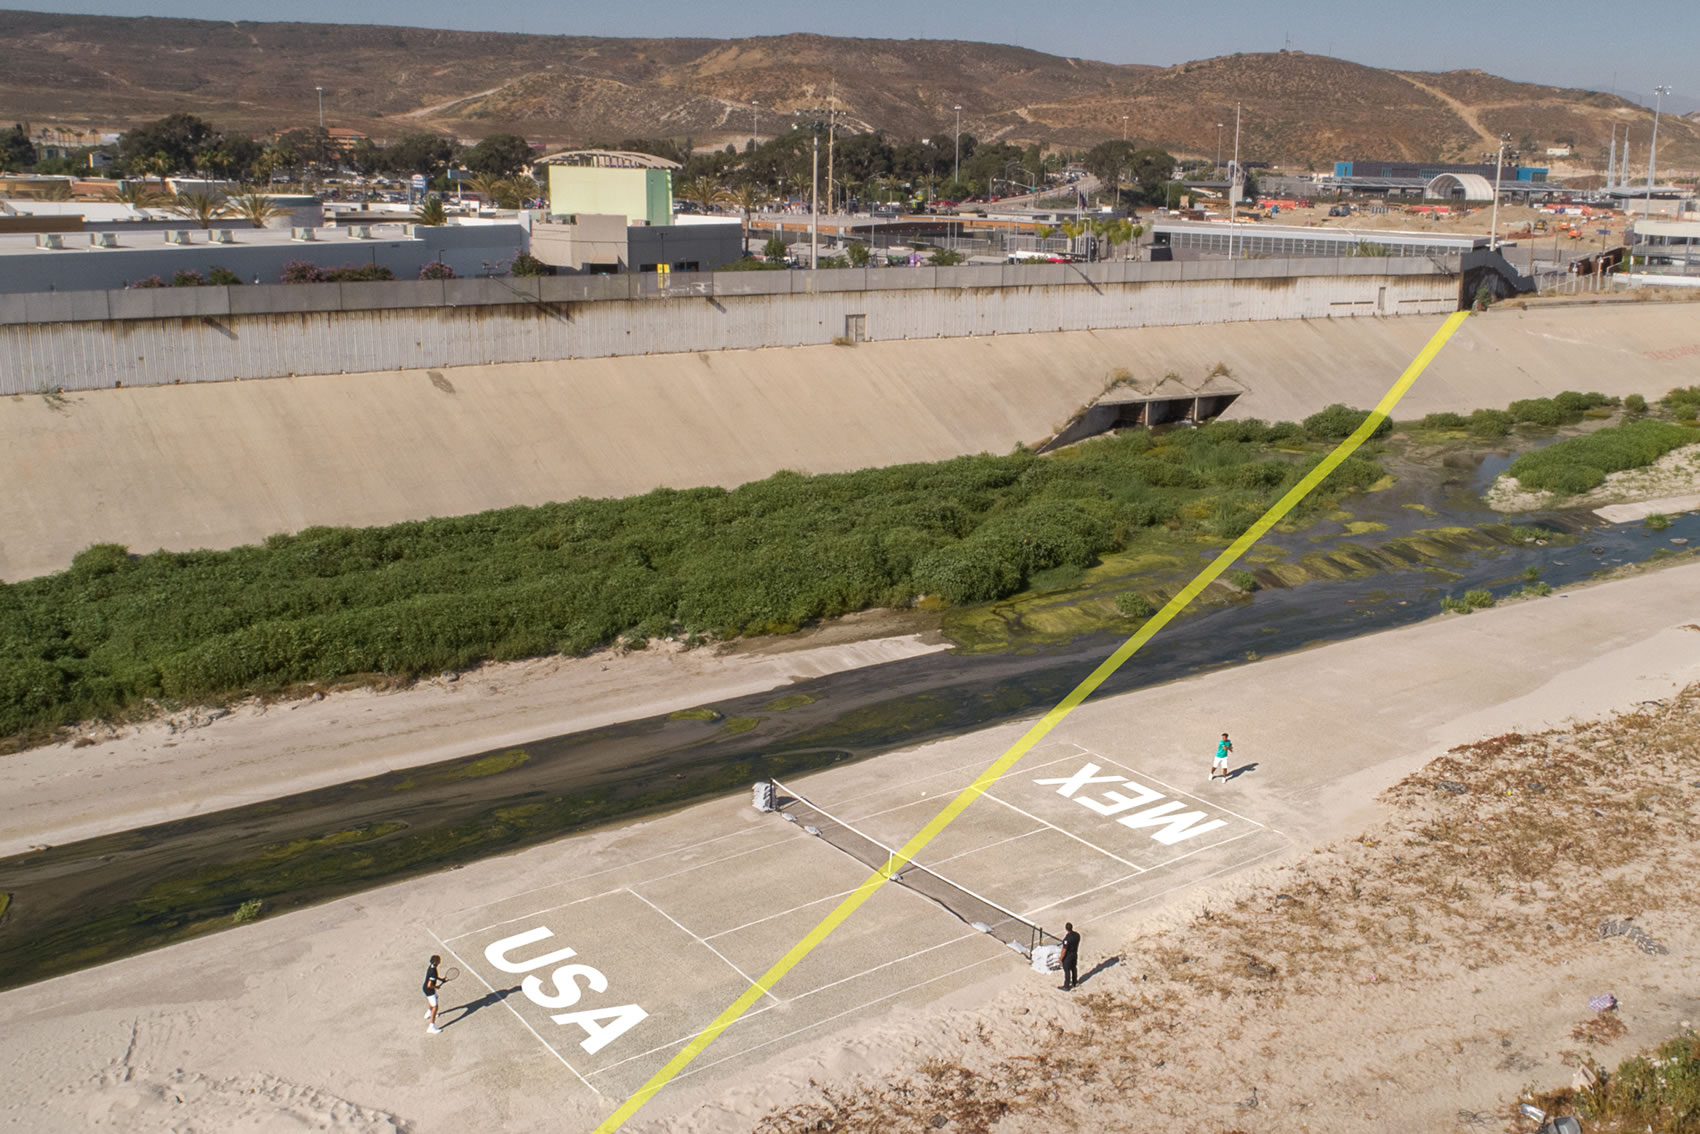 Björn Borg plays a game of tennis across the U.S. and Mexico border image credit Klaus Thymann